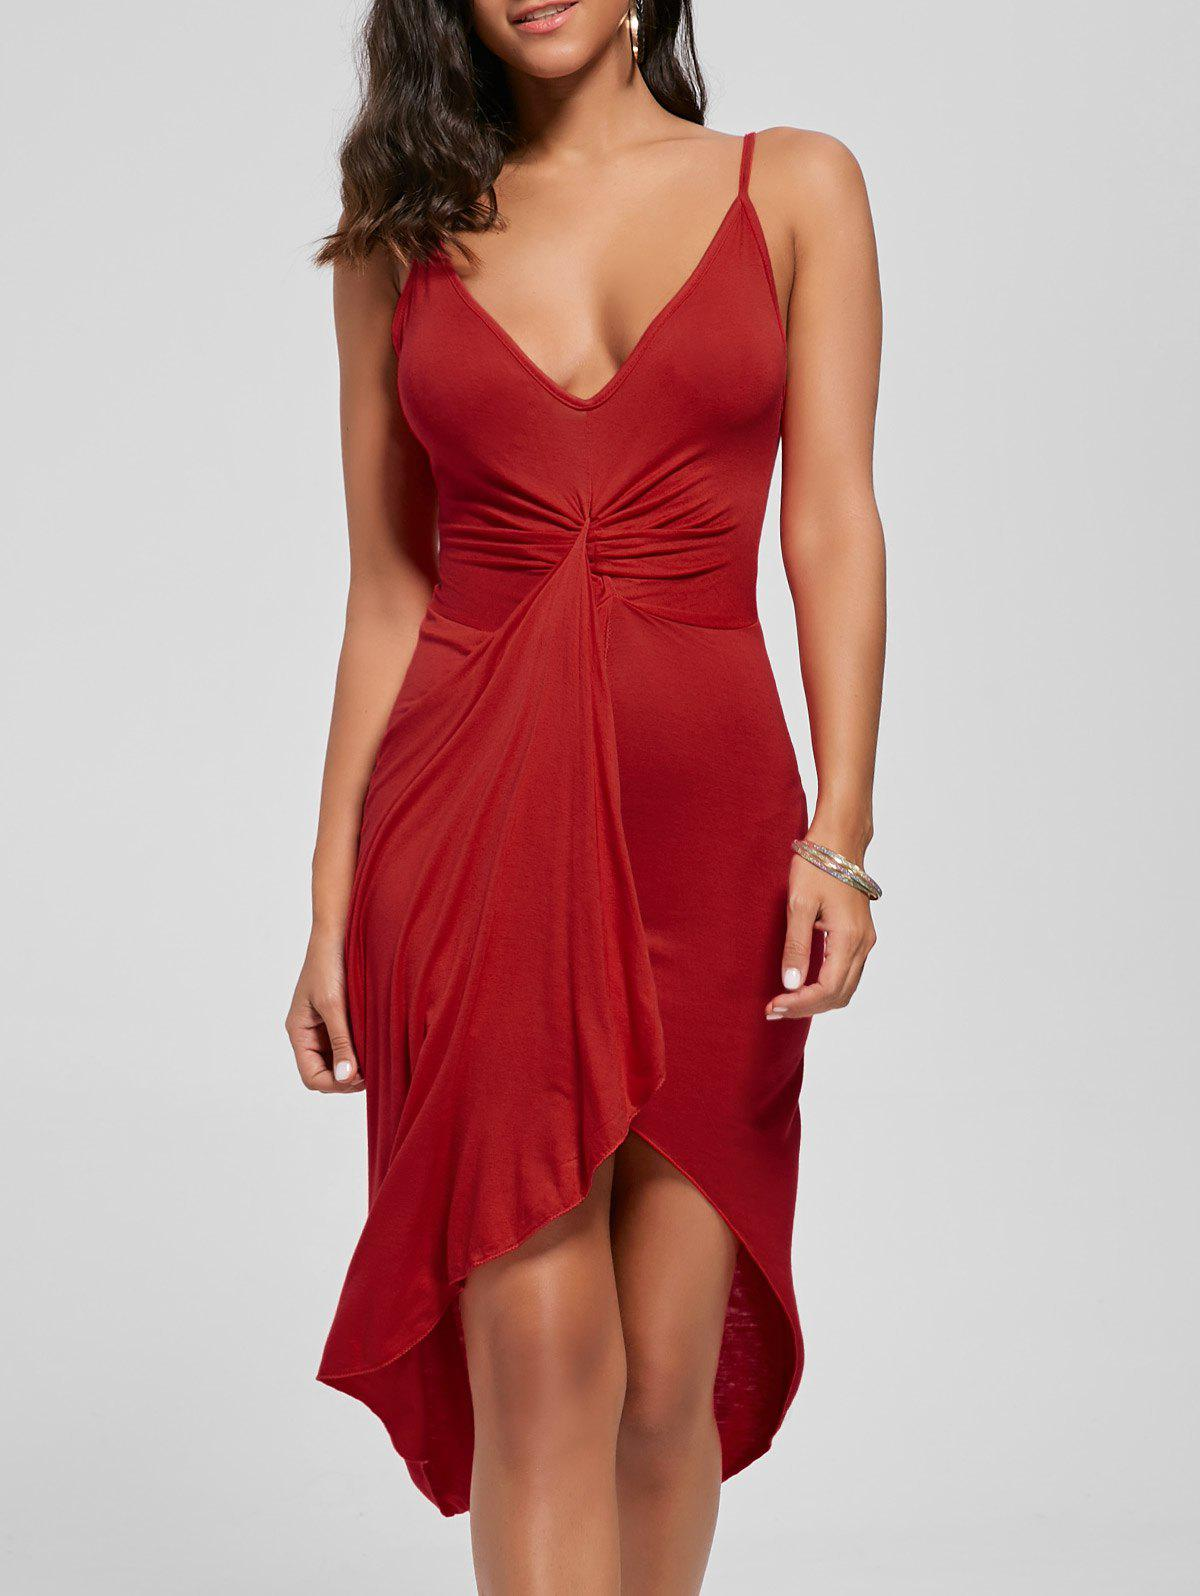 Knotted Asymmetrical Dress - RED L